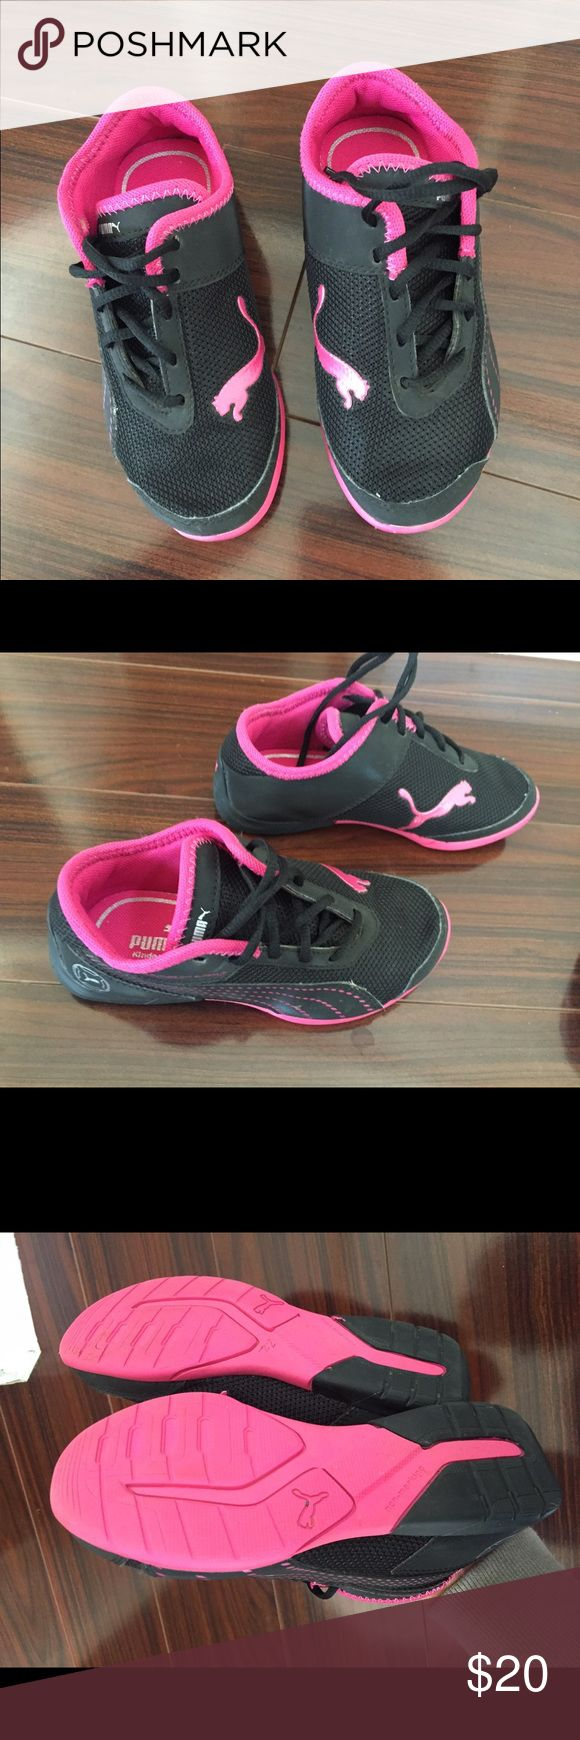 Puma girls shoes Puma girls shoes in excellent condition, used one time! Puma Shoes Sneakers